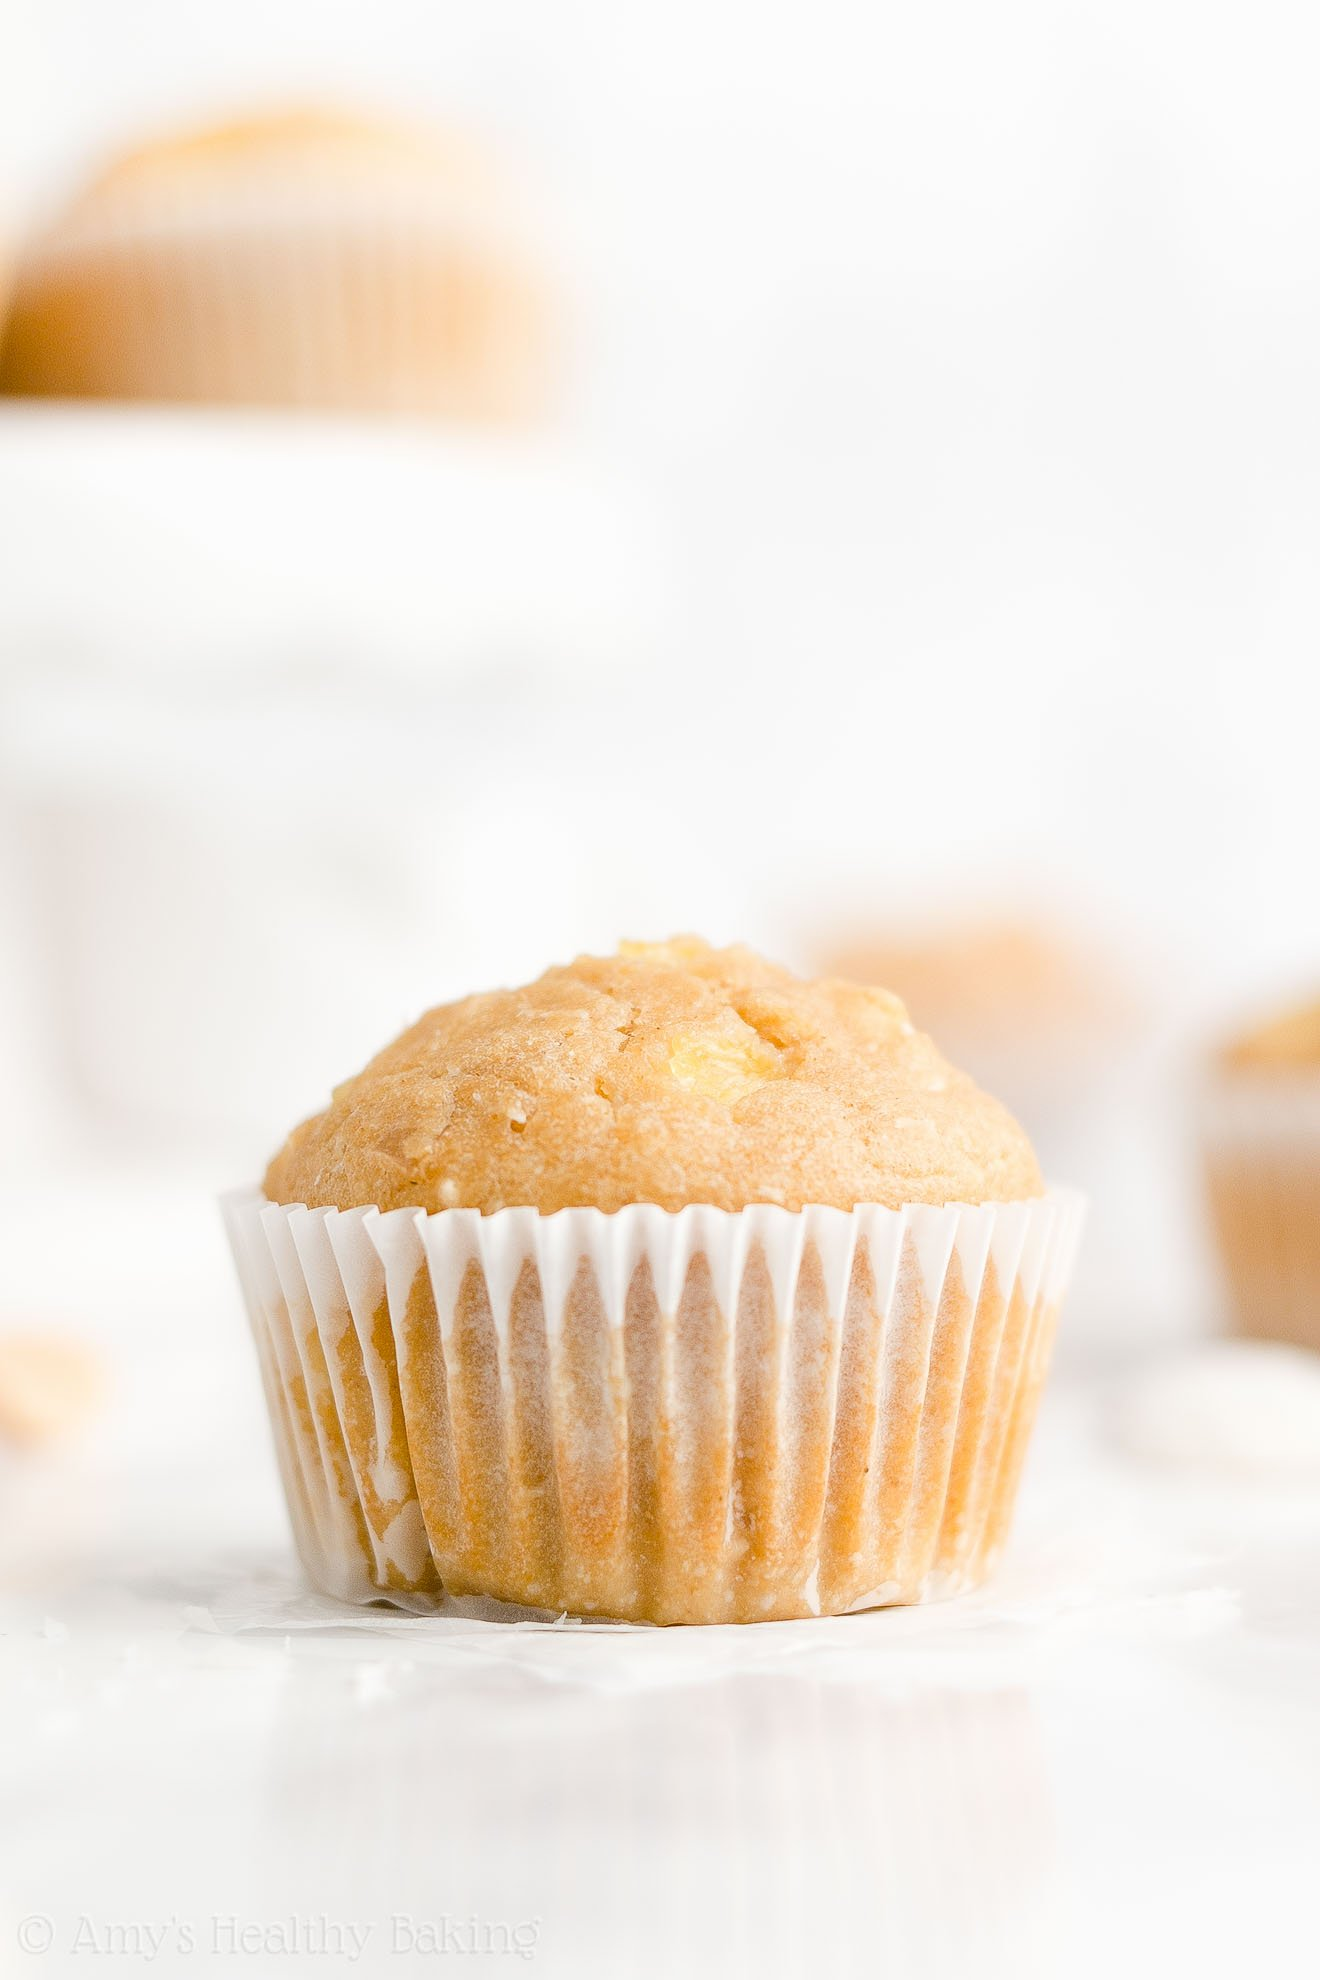 Low Calorie Healthy Whole Wheat Pineapple, Coconut & Macadamia Nut Muffins